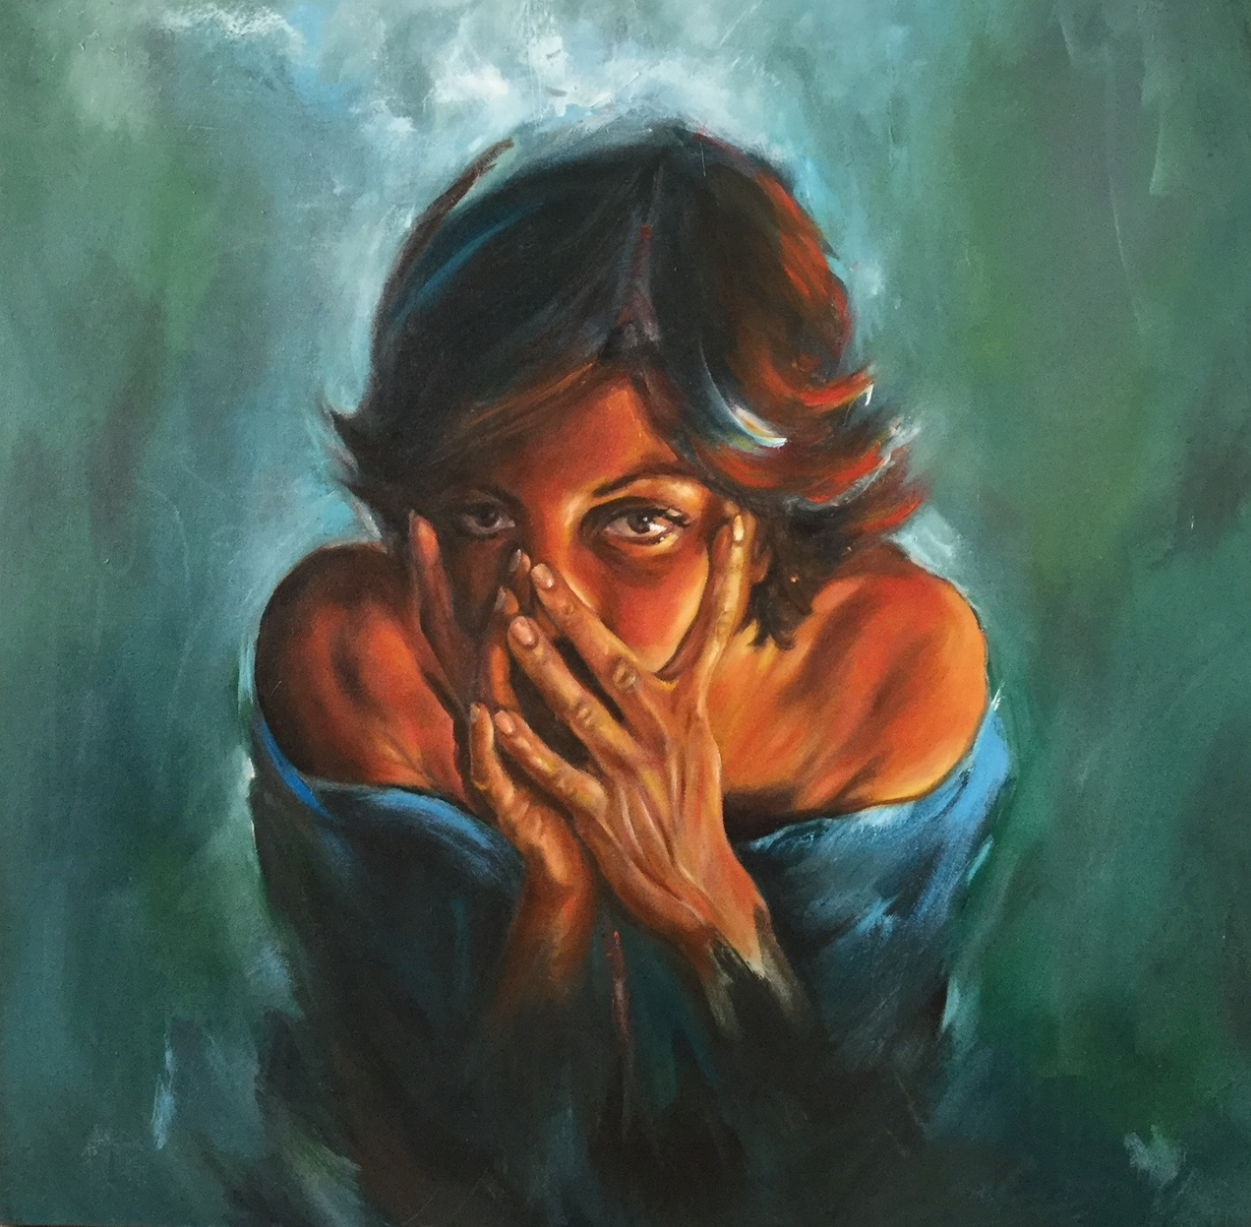 Me, myself and I 2 - 80x80 - Oil on canvas